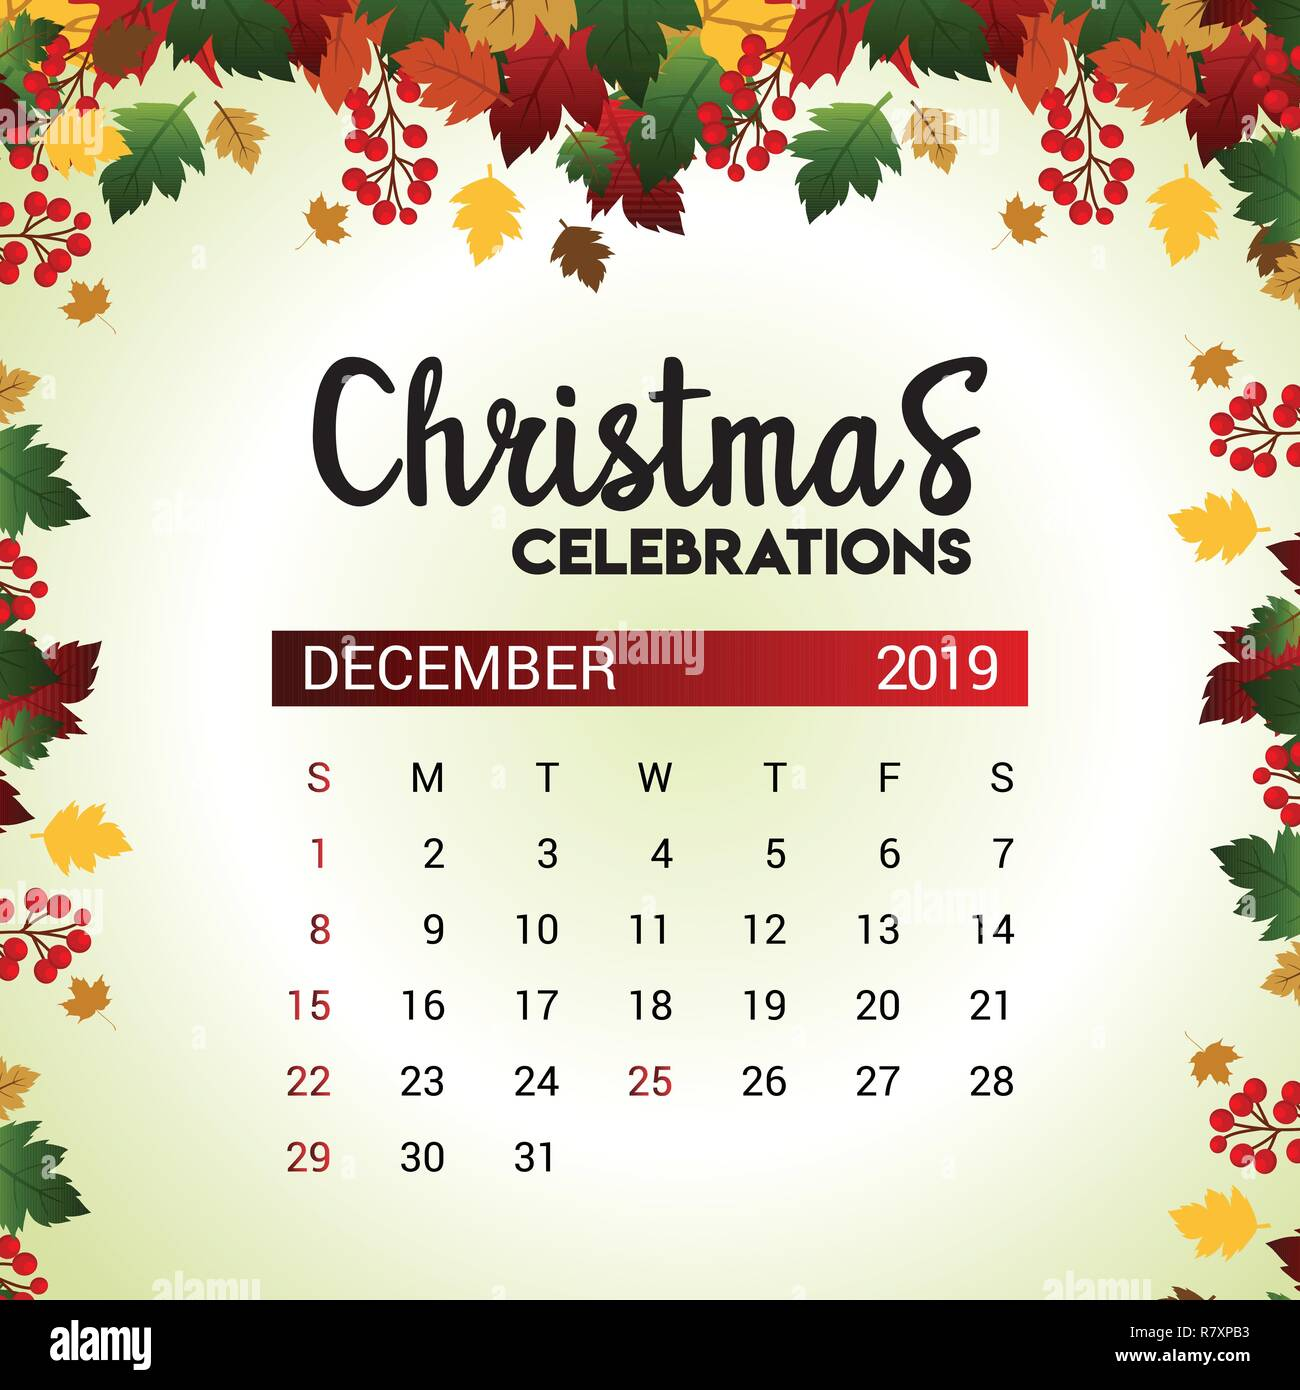 December Calendar 2019 Christmas 2019 December calendar design template of Christmas or New Year